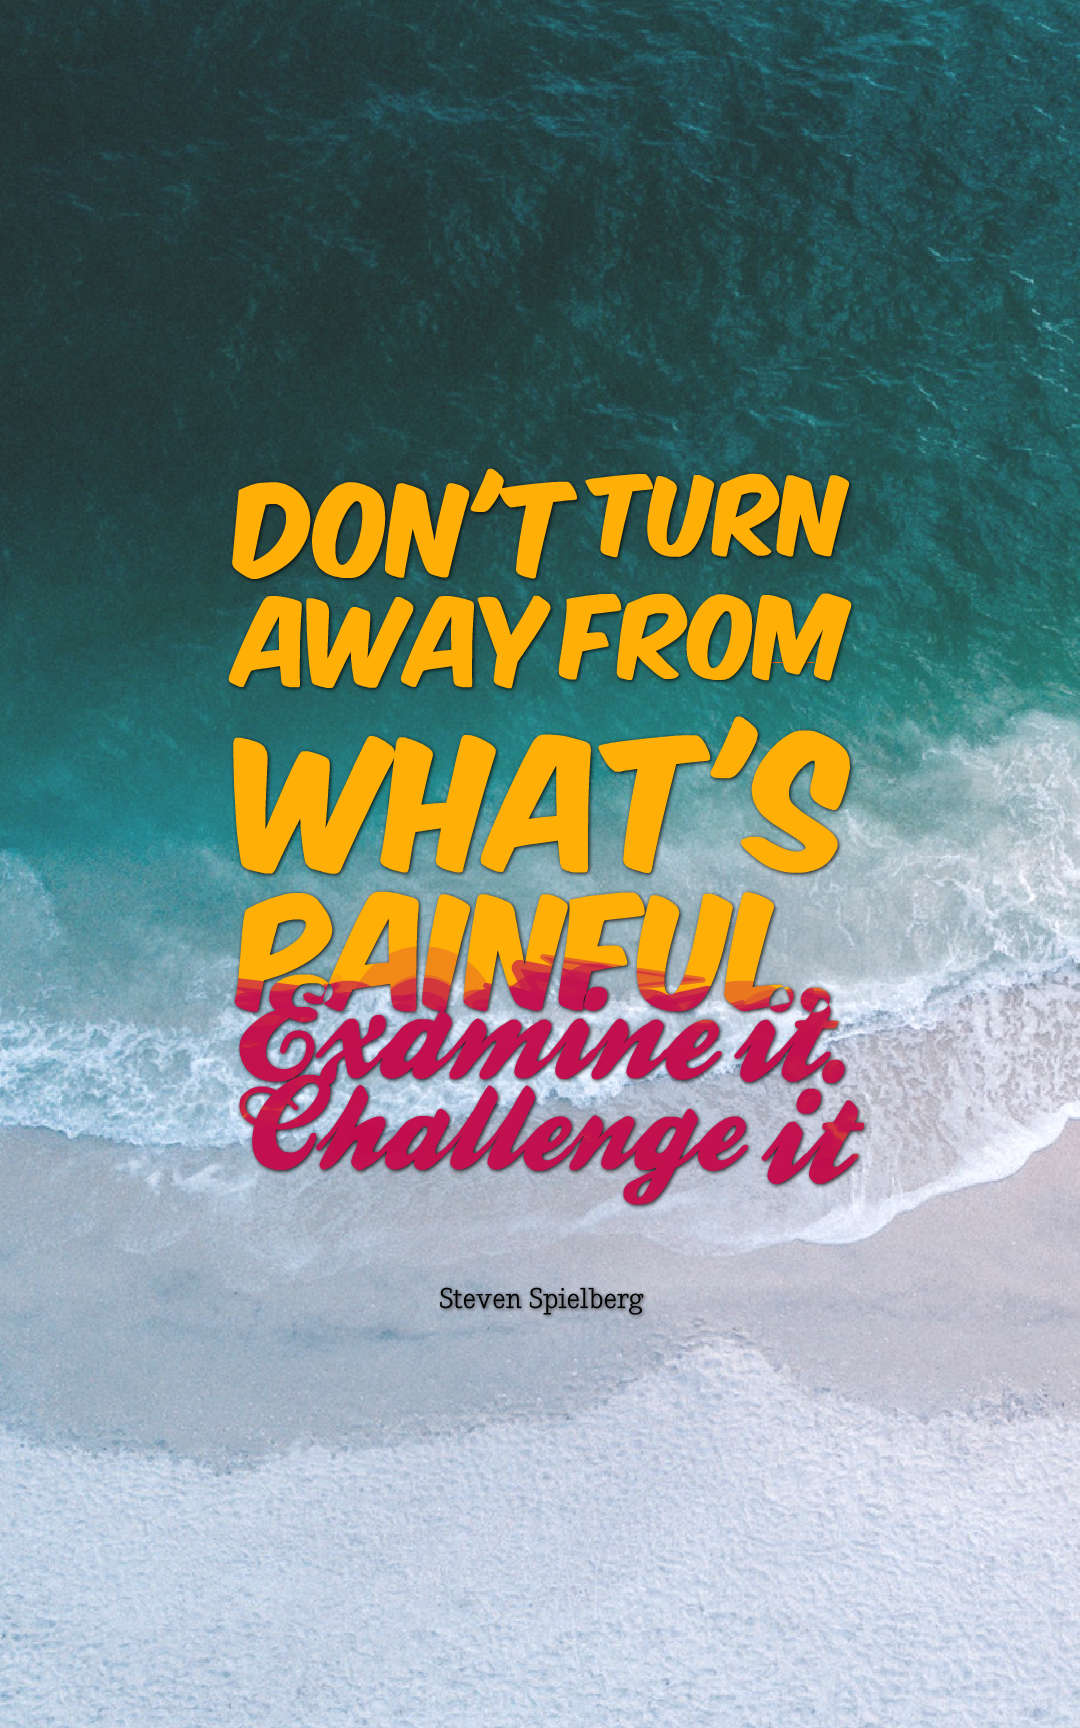 Quotes image of Don't turn away from what's painful. Examine it. Challenge it